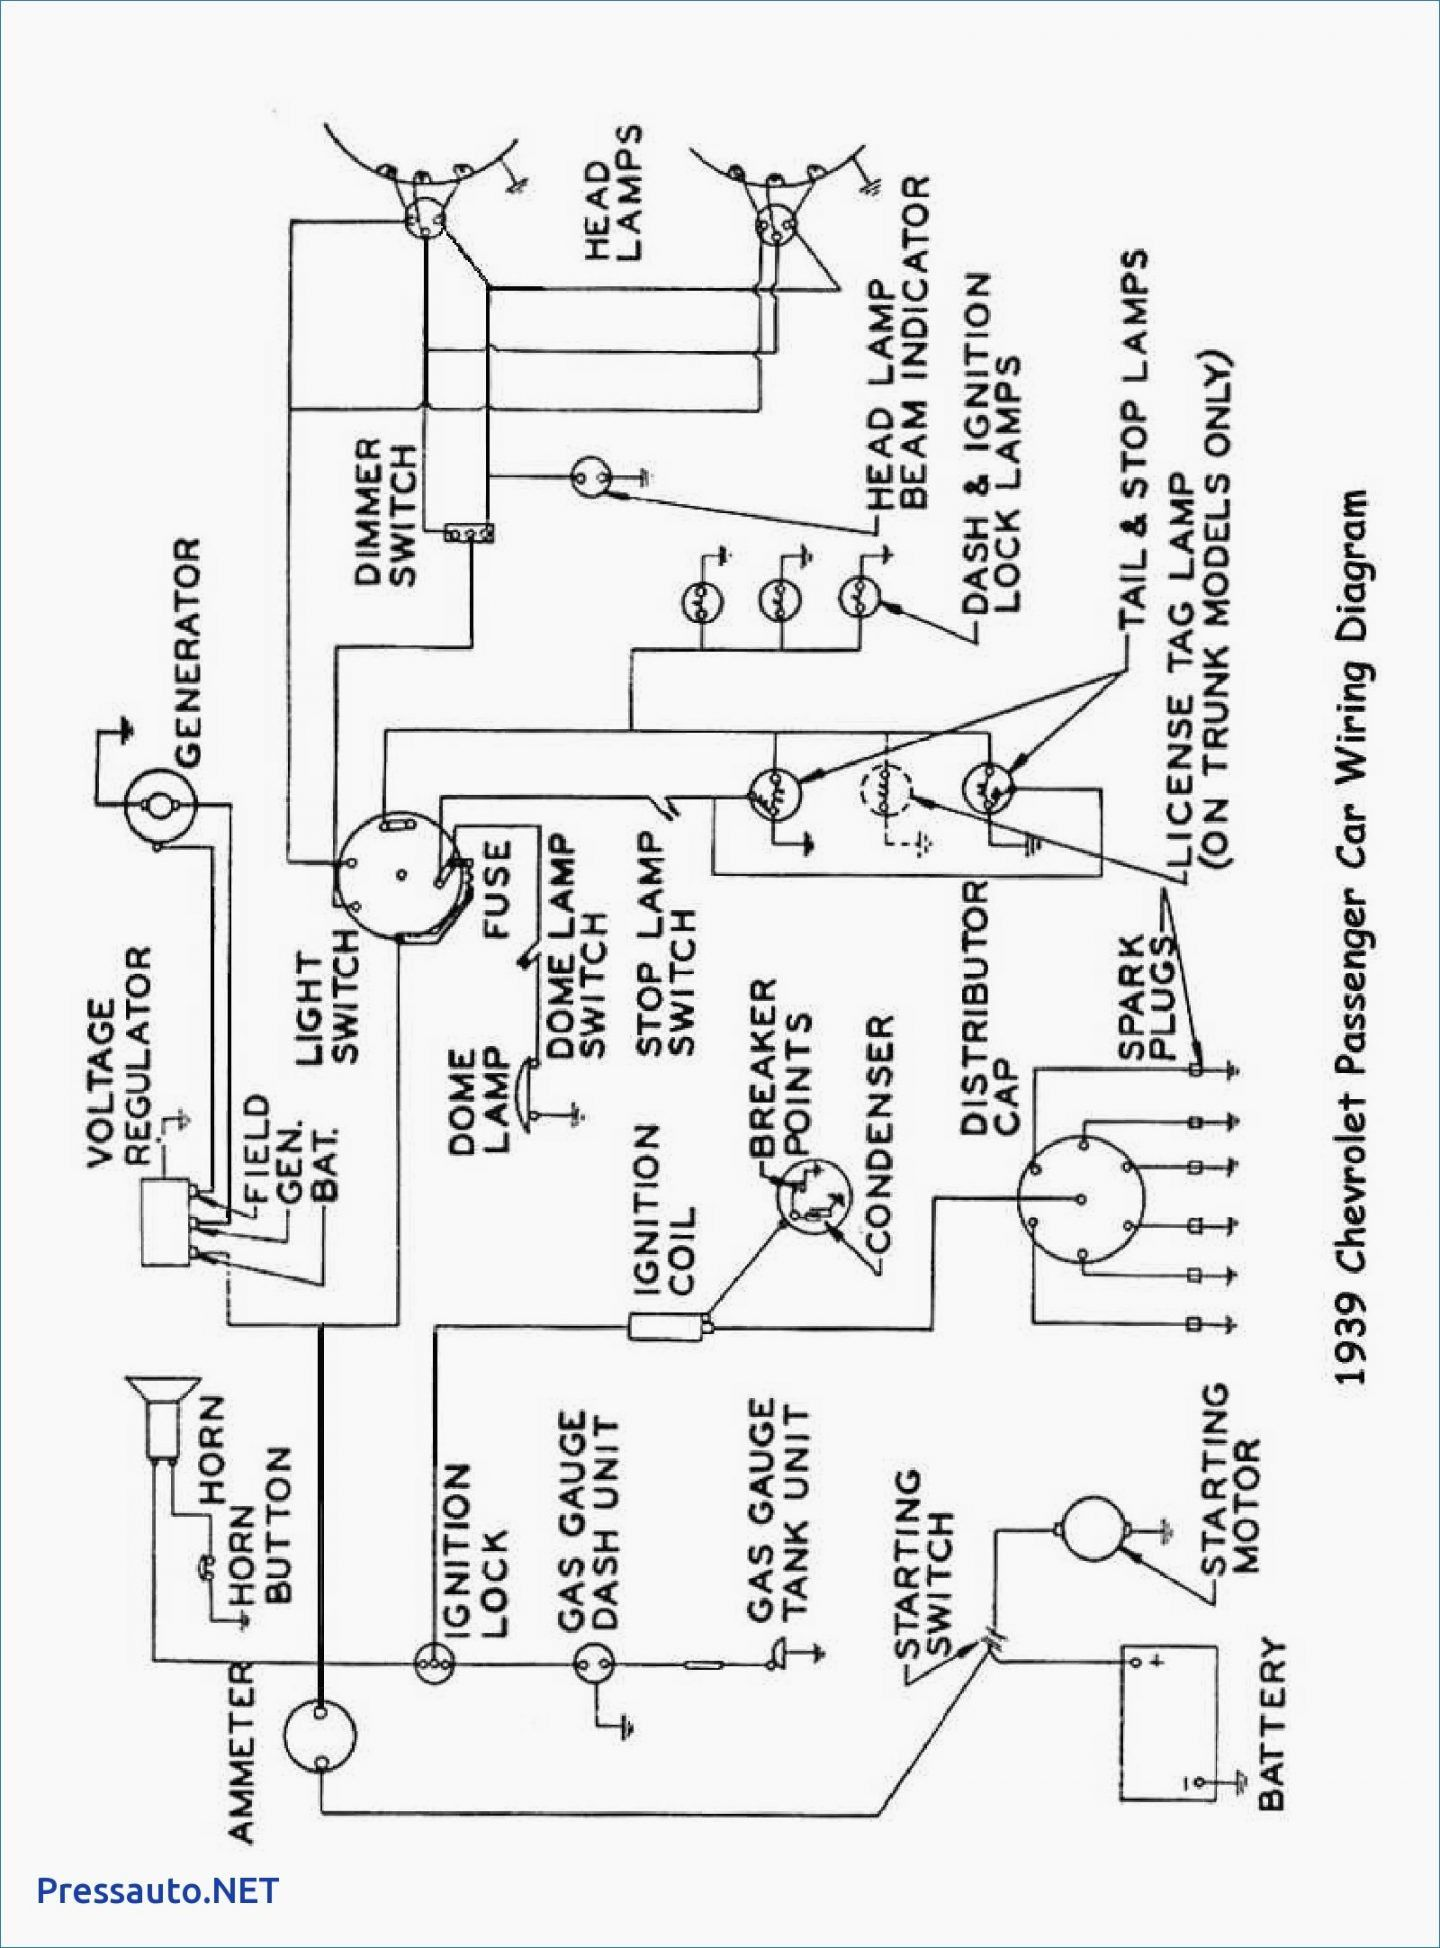 hight resolution of wiring diagram welding machine inspirationa best of pdf circuitwiring diagram welding machine inspirationa best of pdf